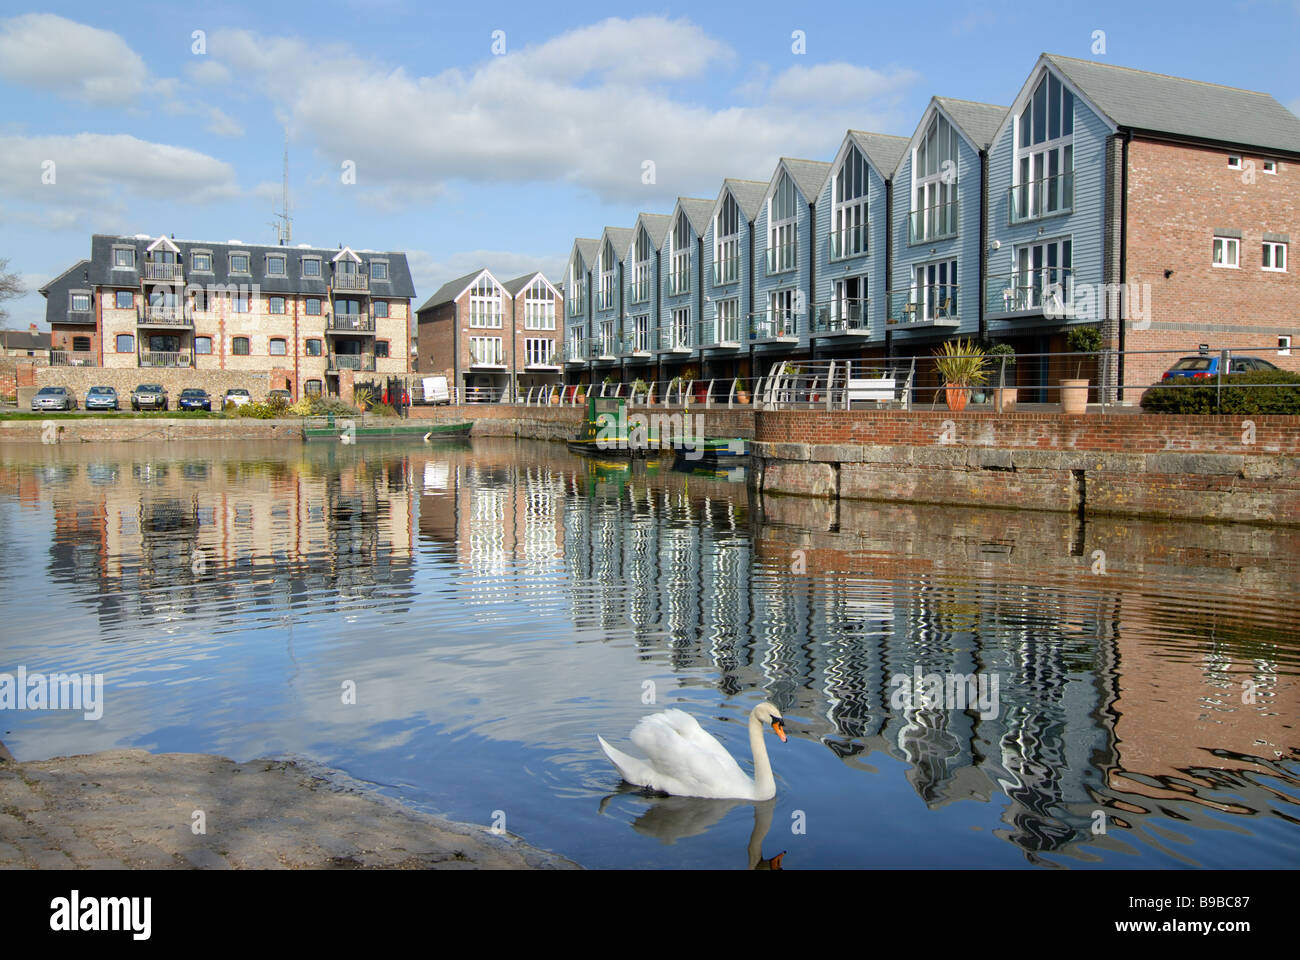 Chichester Canal Basin - Stock Image